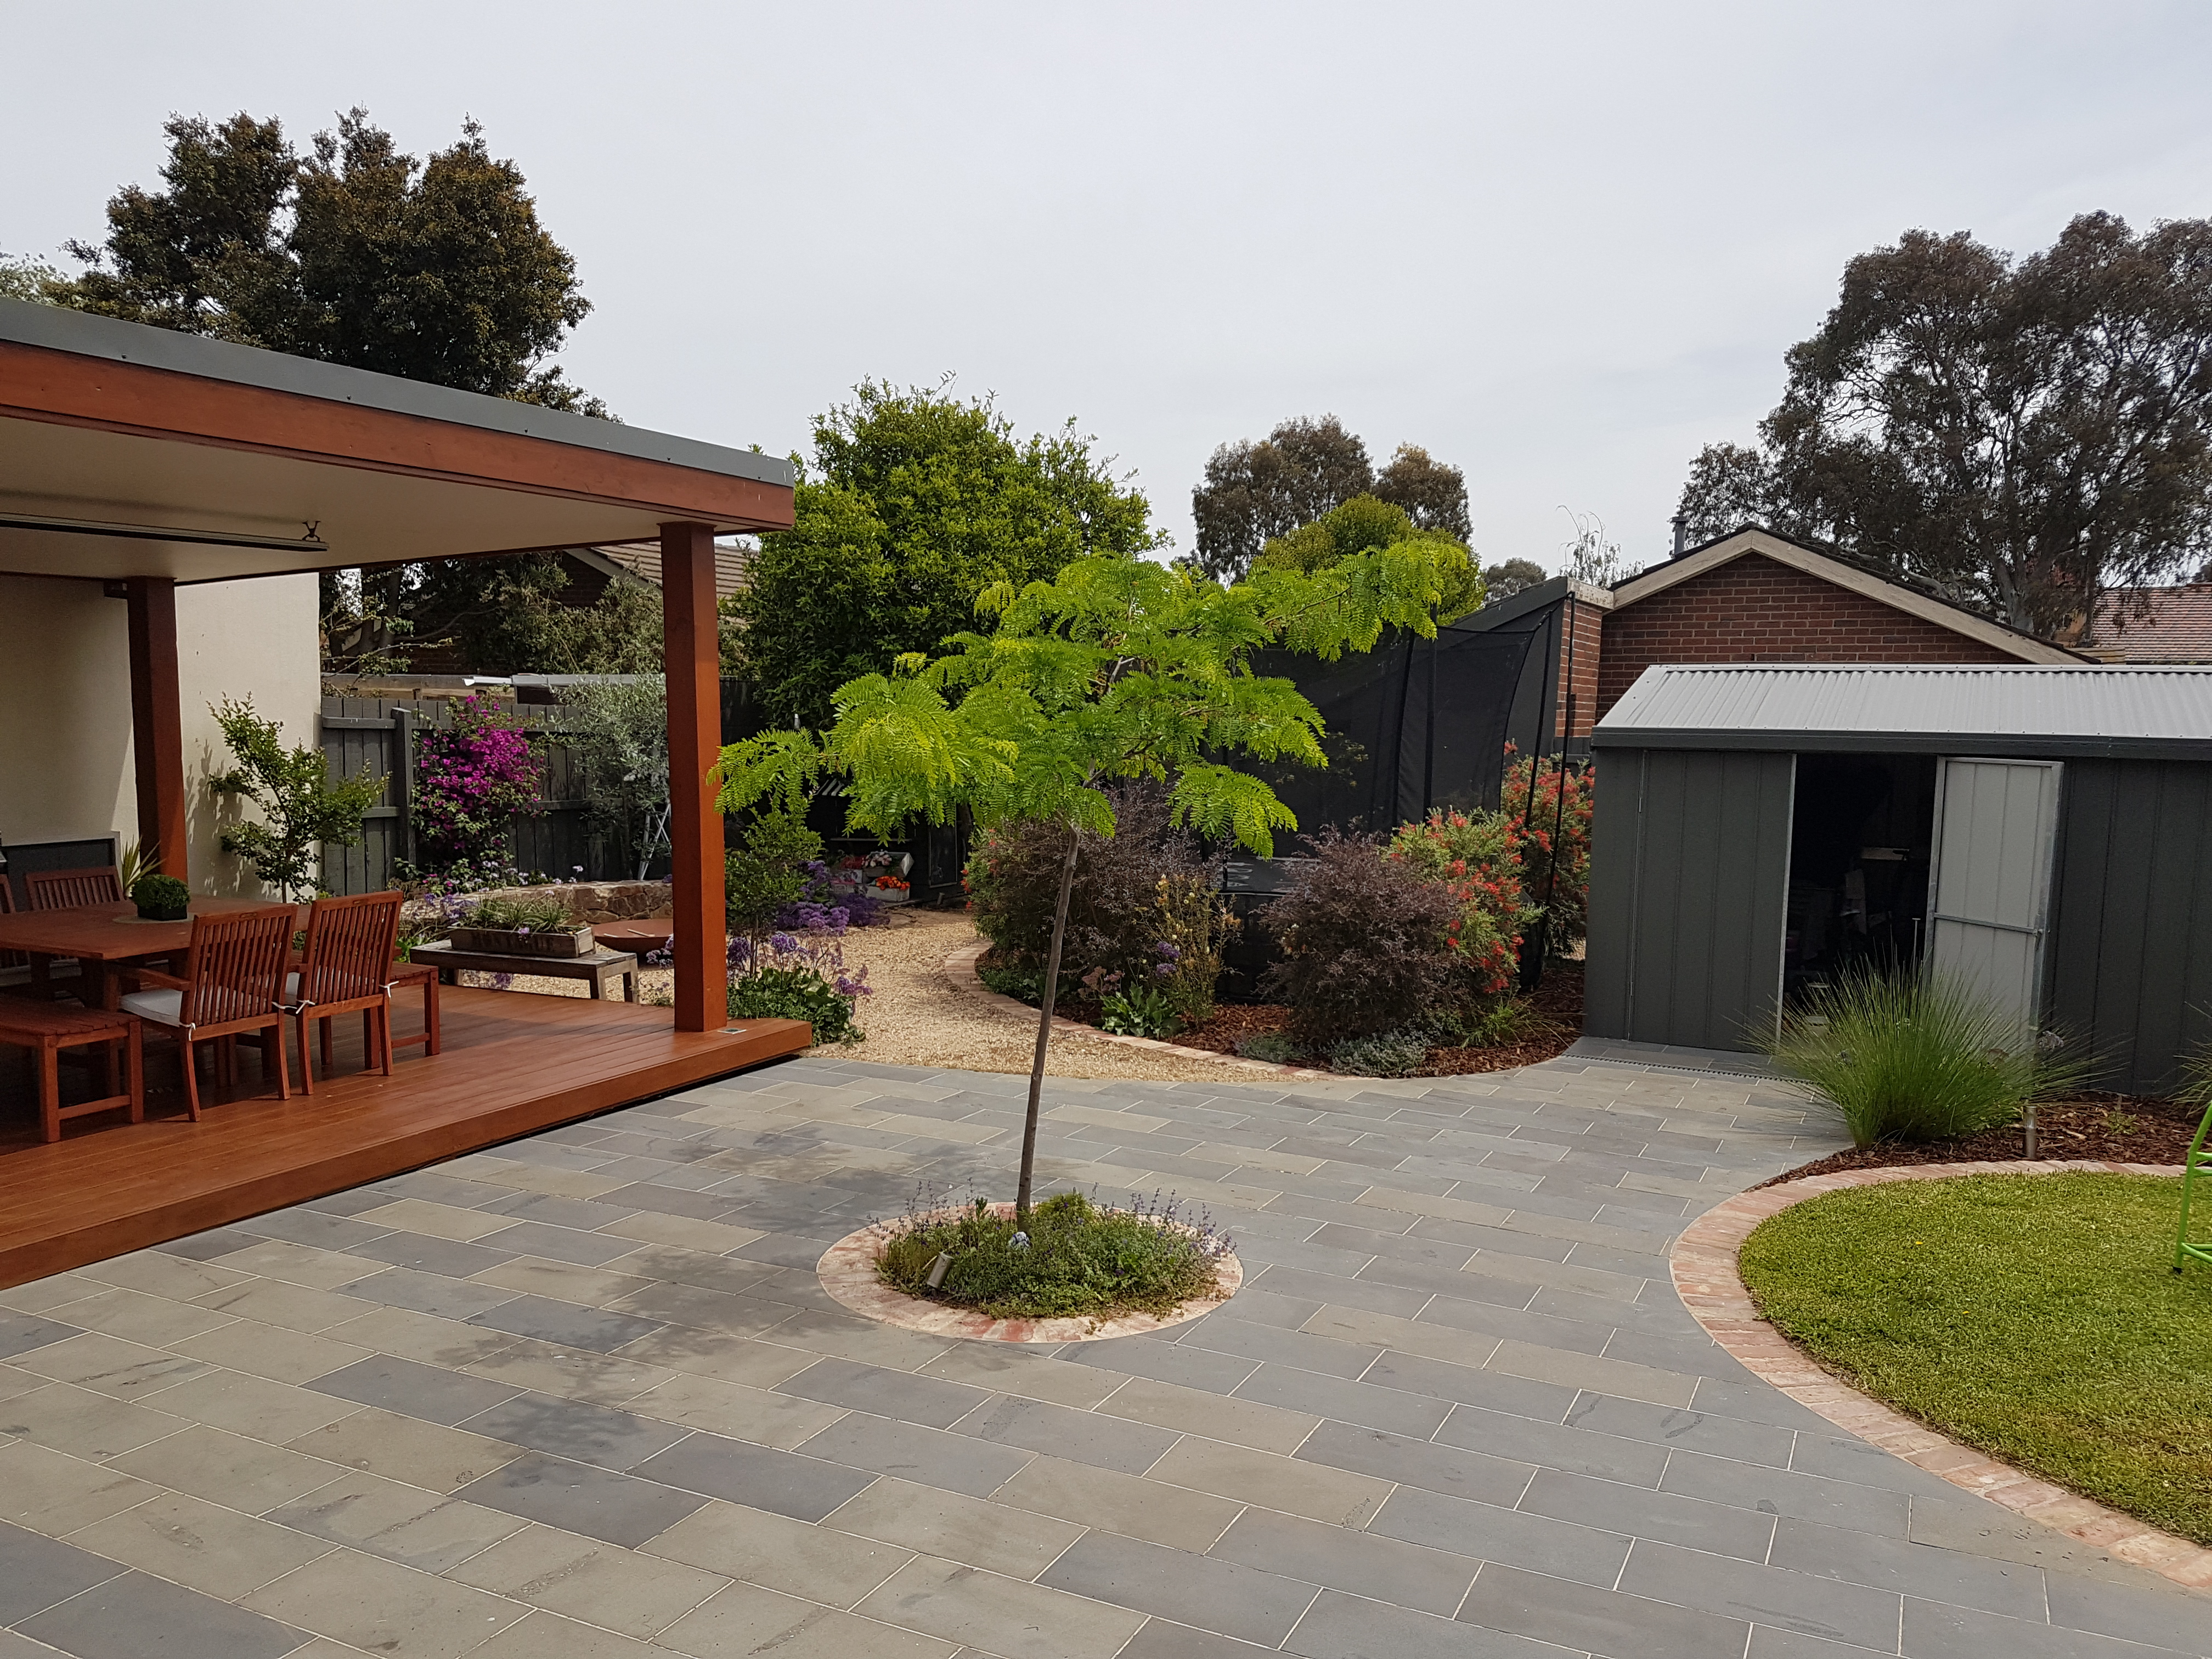 Bluestone paving, second hand red brick edging, shade tree in the centre, trampuline, large shed